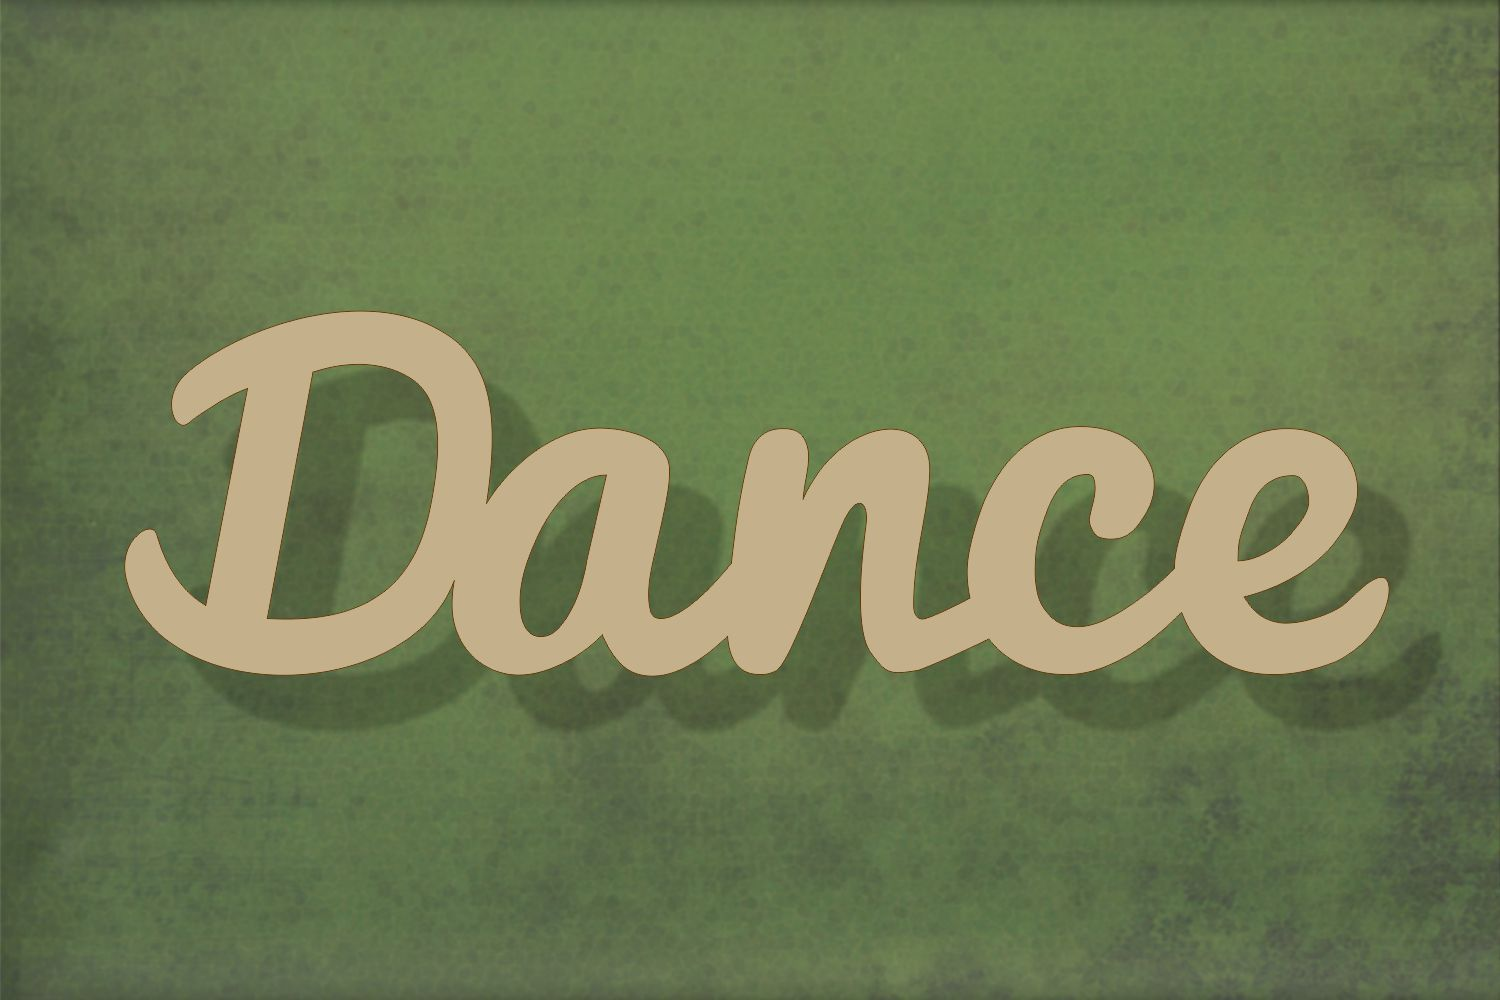 Laser cut, blank wooden Dance text shape for craft